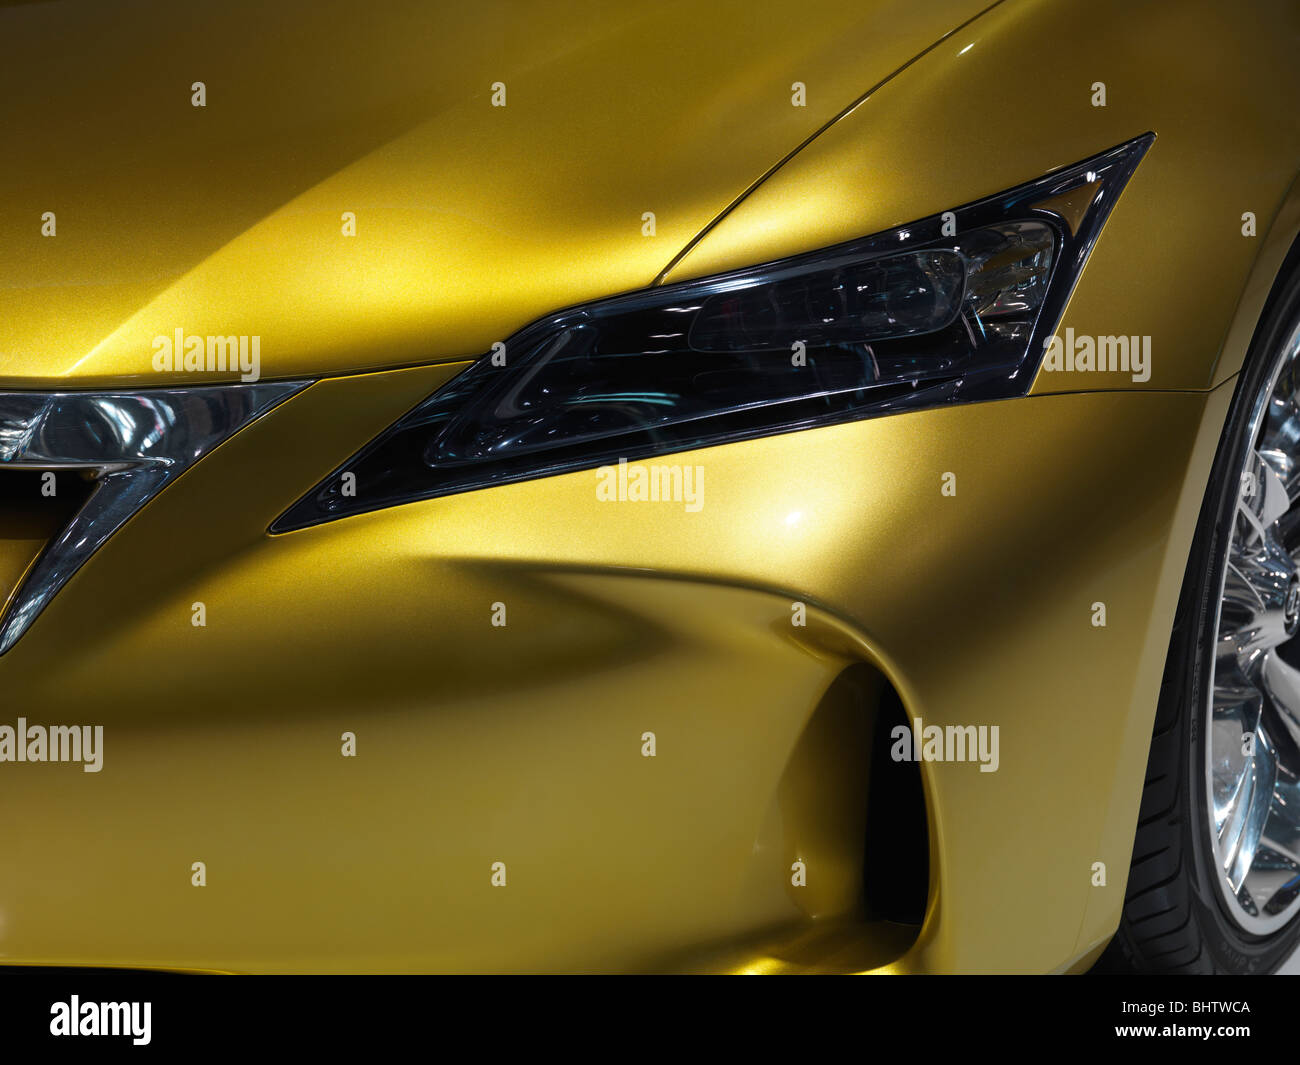 Closeup Of Exotic Gold Shiny Car Lexus LF Ch Hybrid Concept Car   Stock  Image